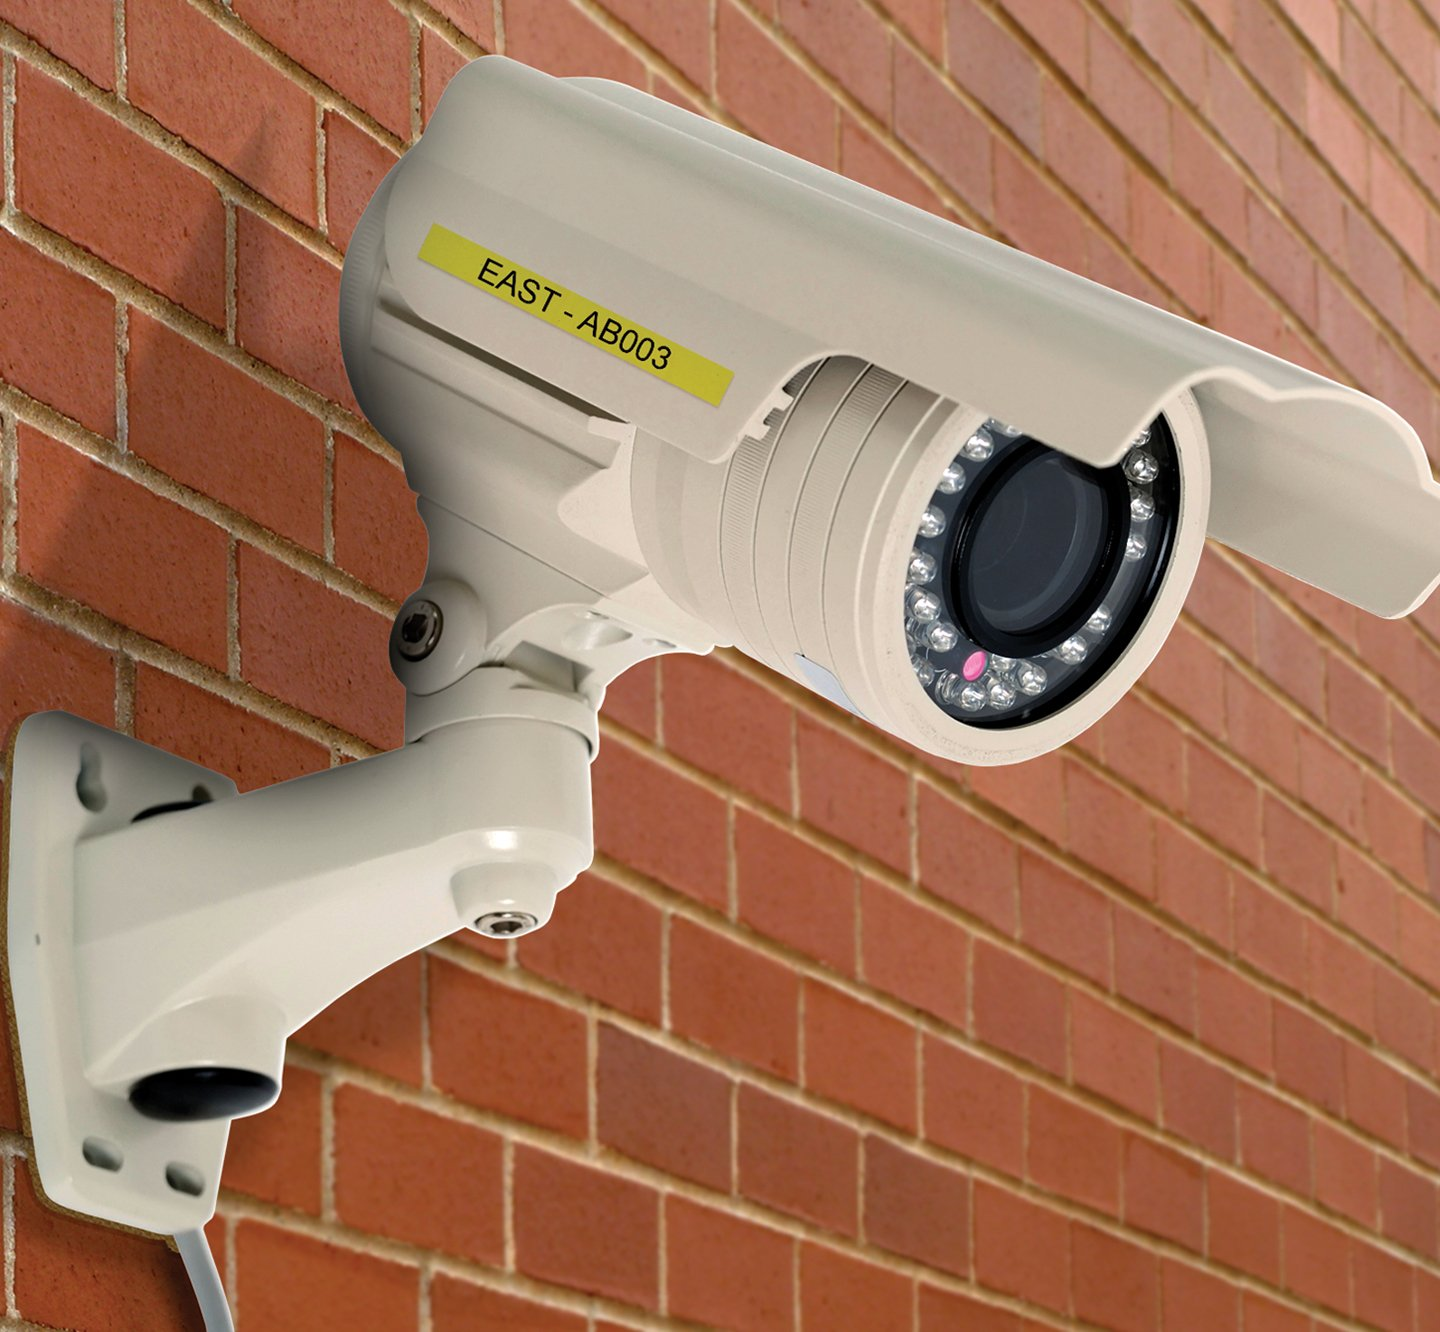 A labeled security camera mounted to a brick wall.